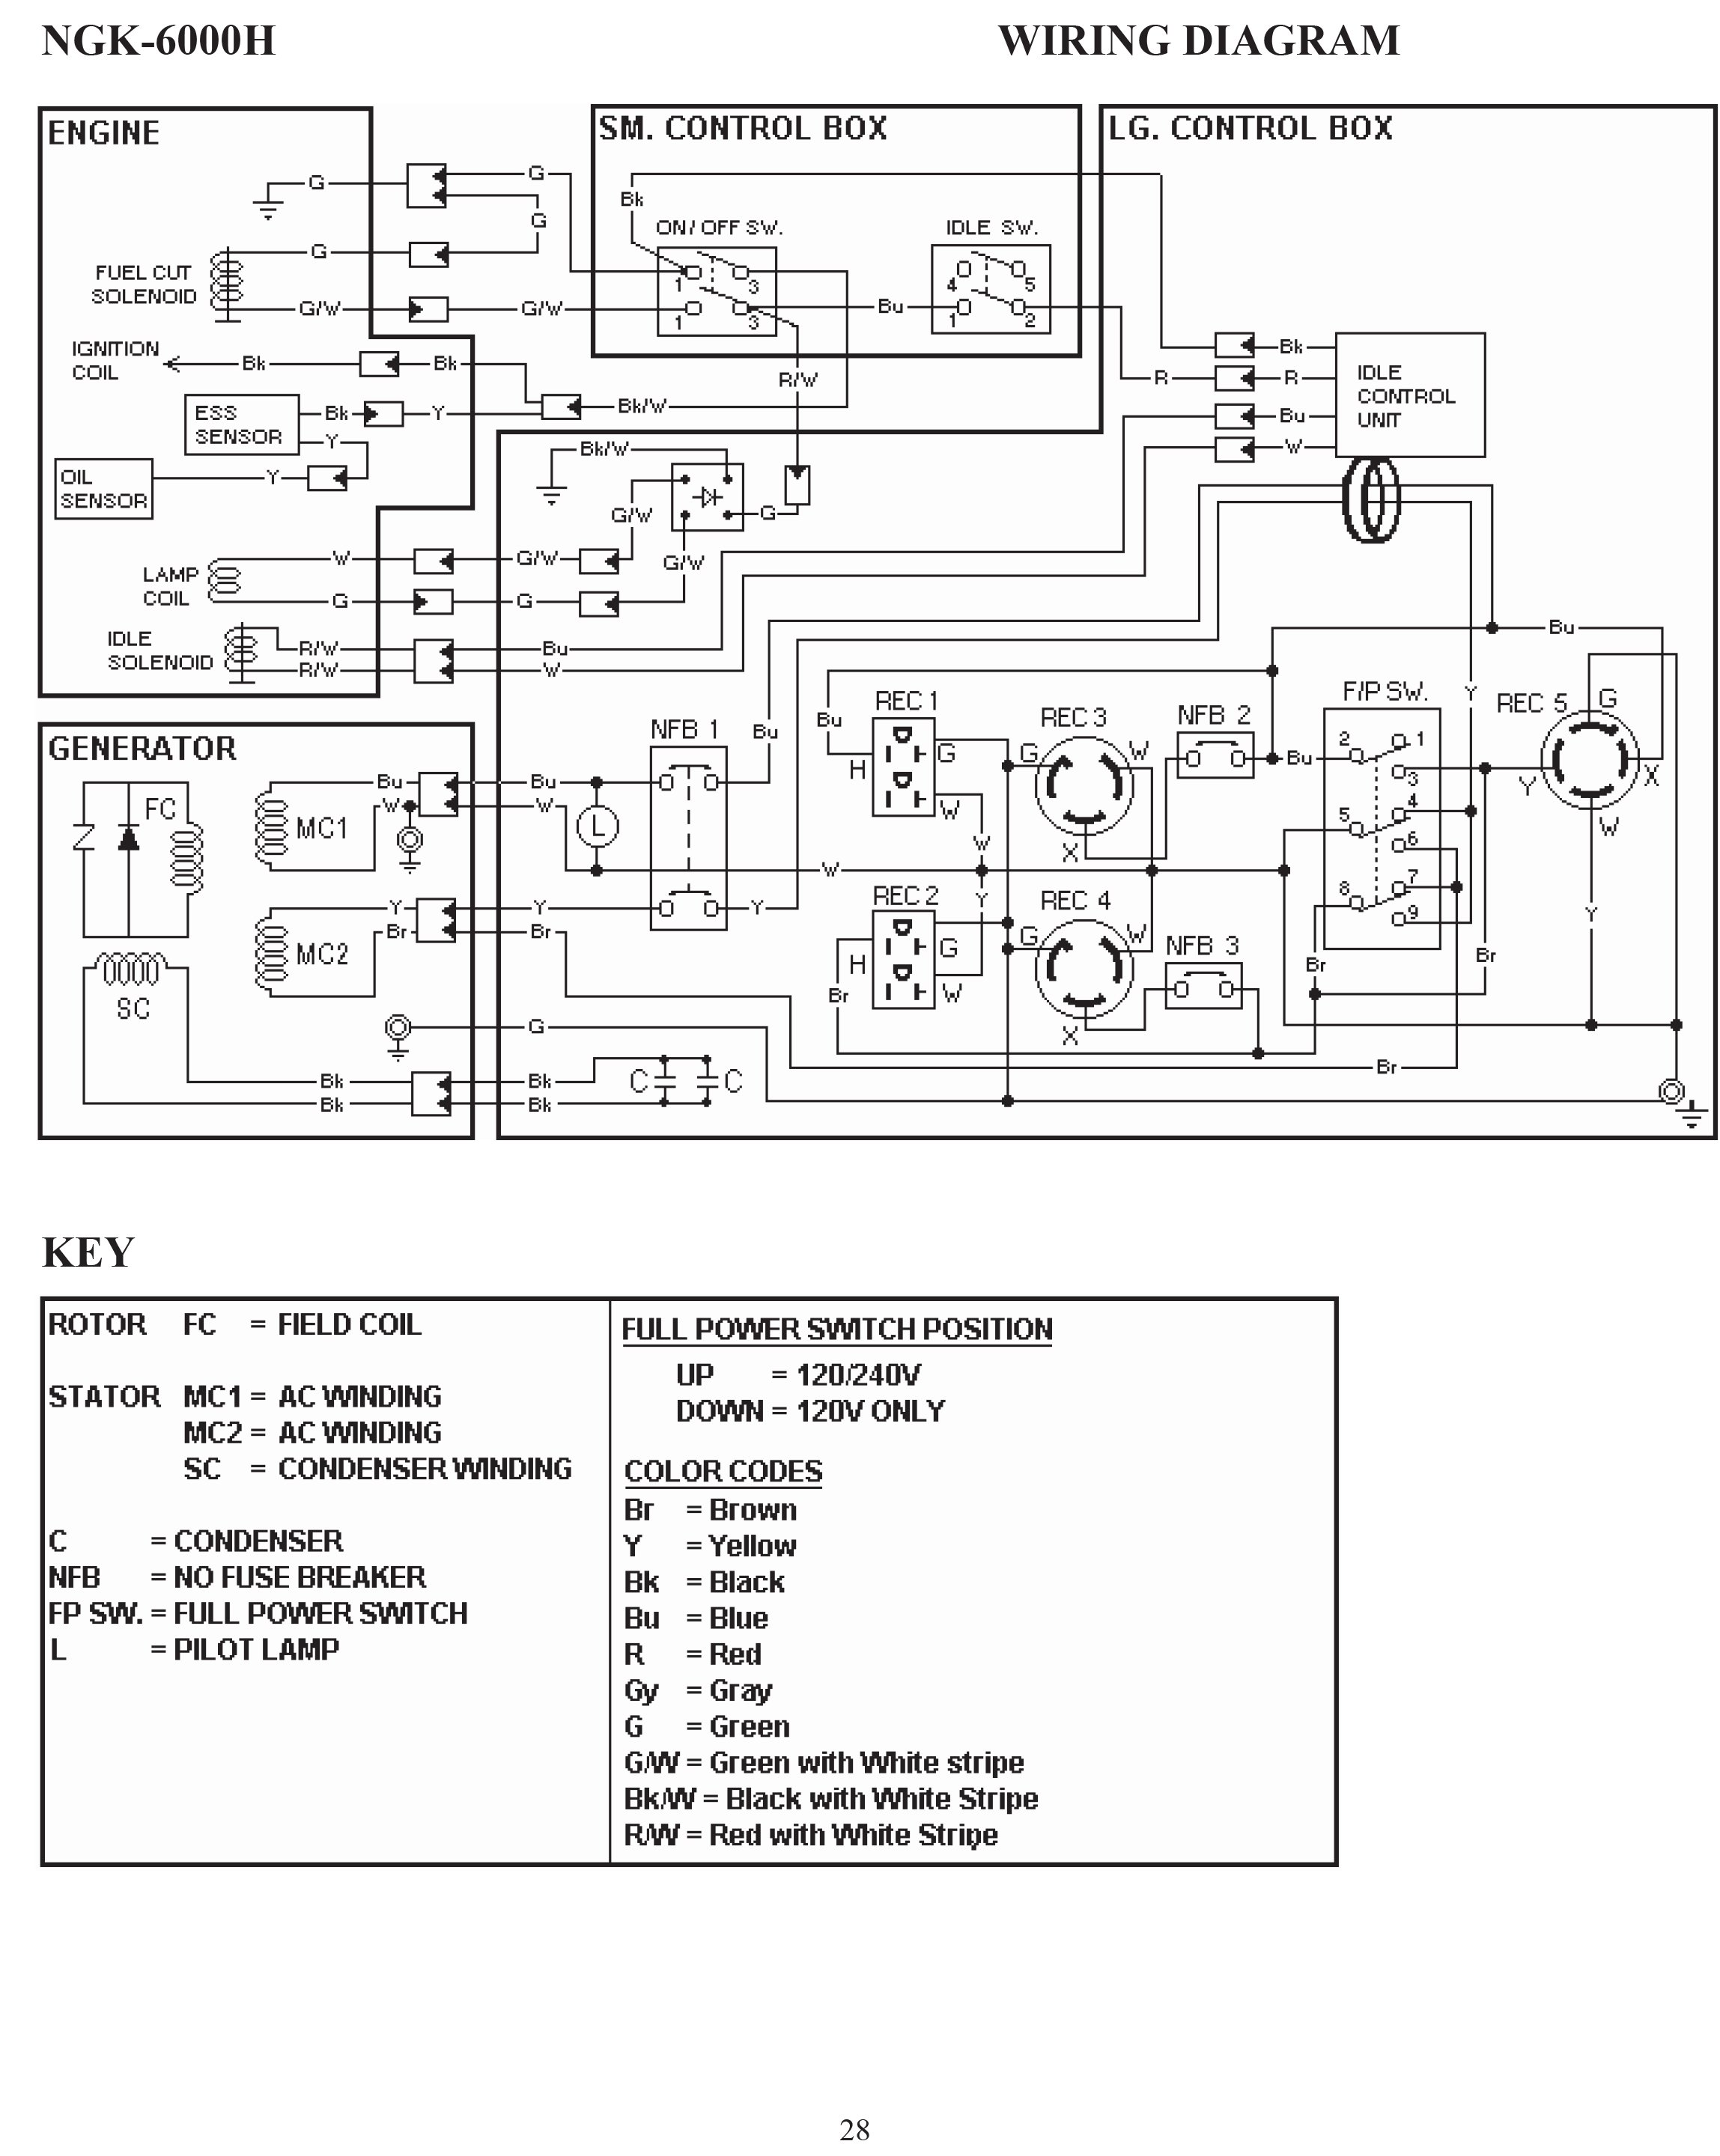 2013 11 06_014756_ngk generator honda engine wiring diagram hank, i see your reply to the problem with the dewalt dg6000 from Chevy Engine Wiring Harness at readyjetset.co